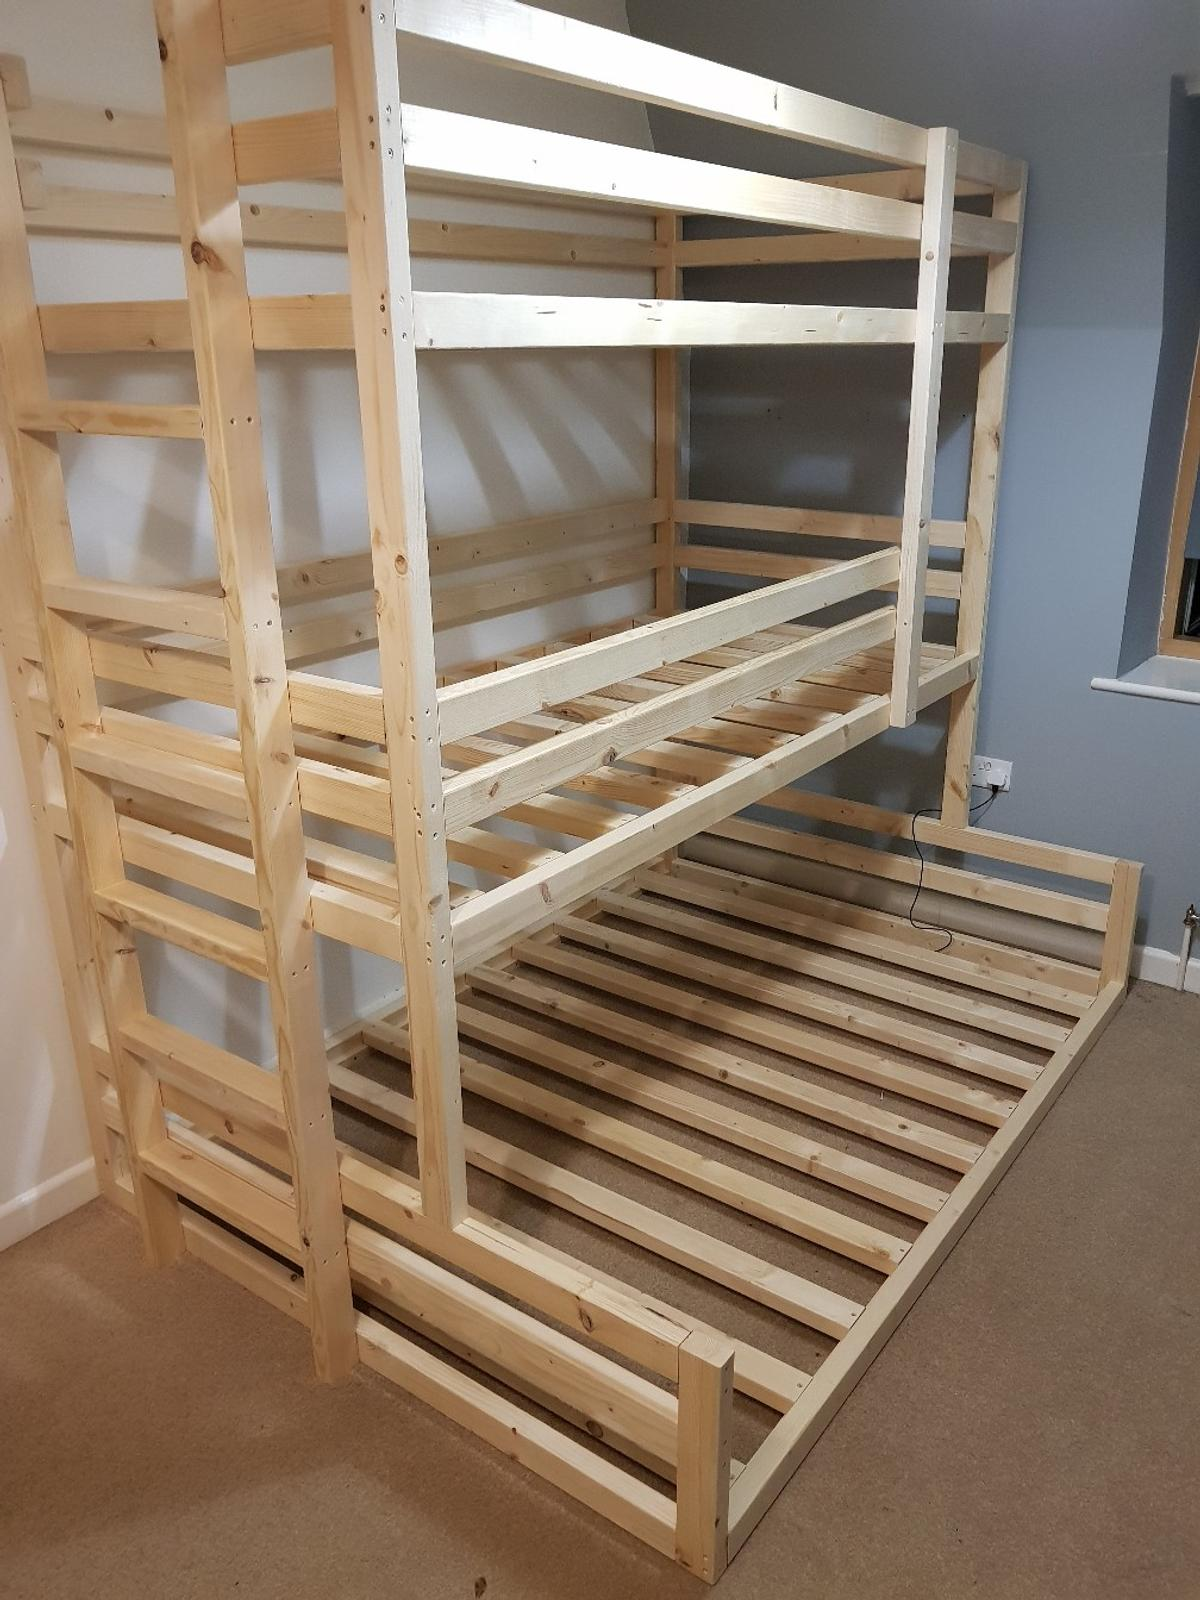 Picture of: Triple Bunk Bed Double Bottom In B31 Birmingham For 350 00 For Sale Shpock